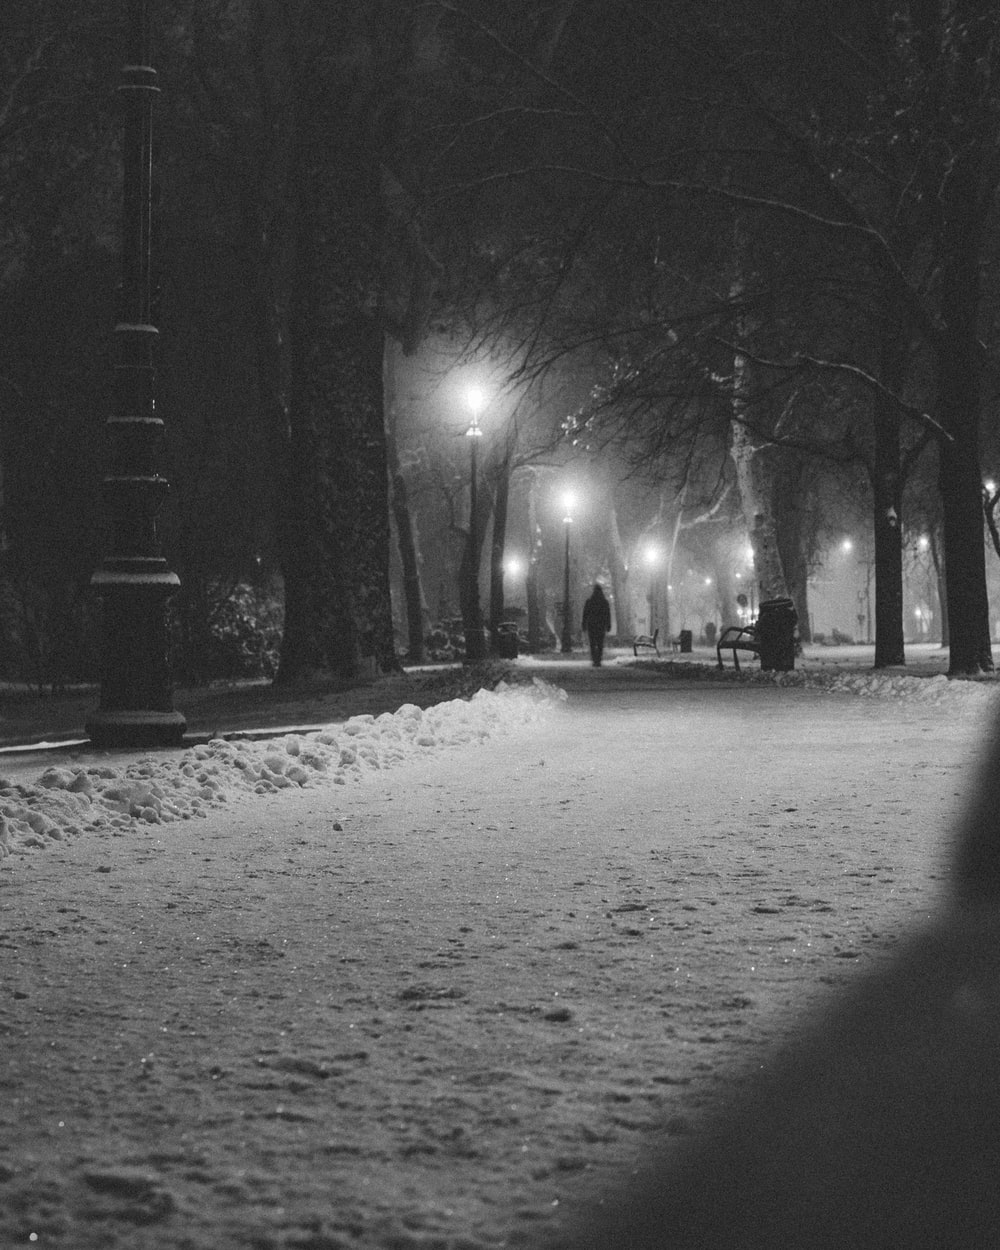 person walking on road beside trees during nighttime